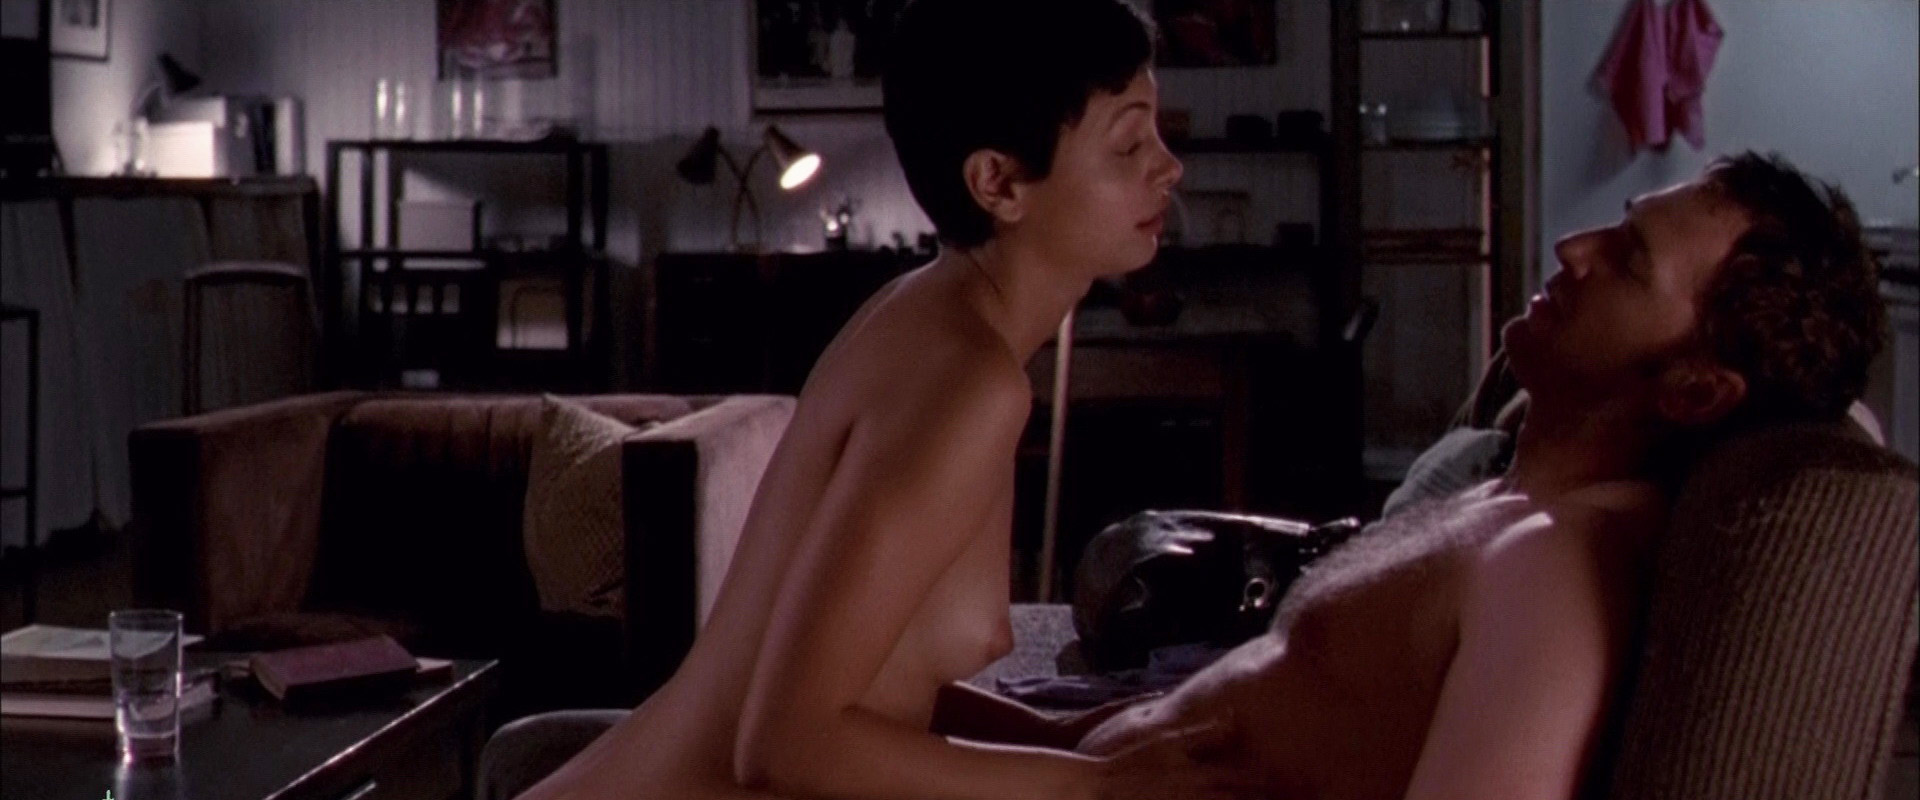 braless Sex Morena Baccarin naked photo 2017